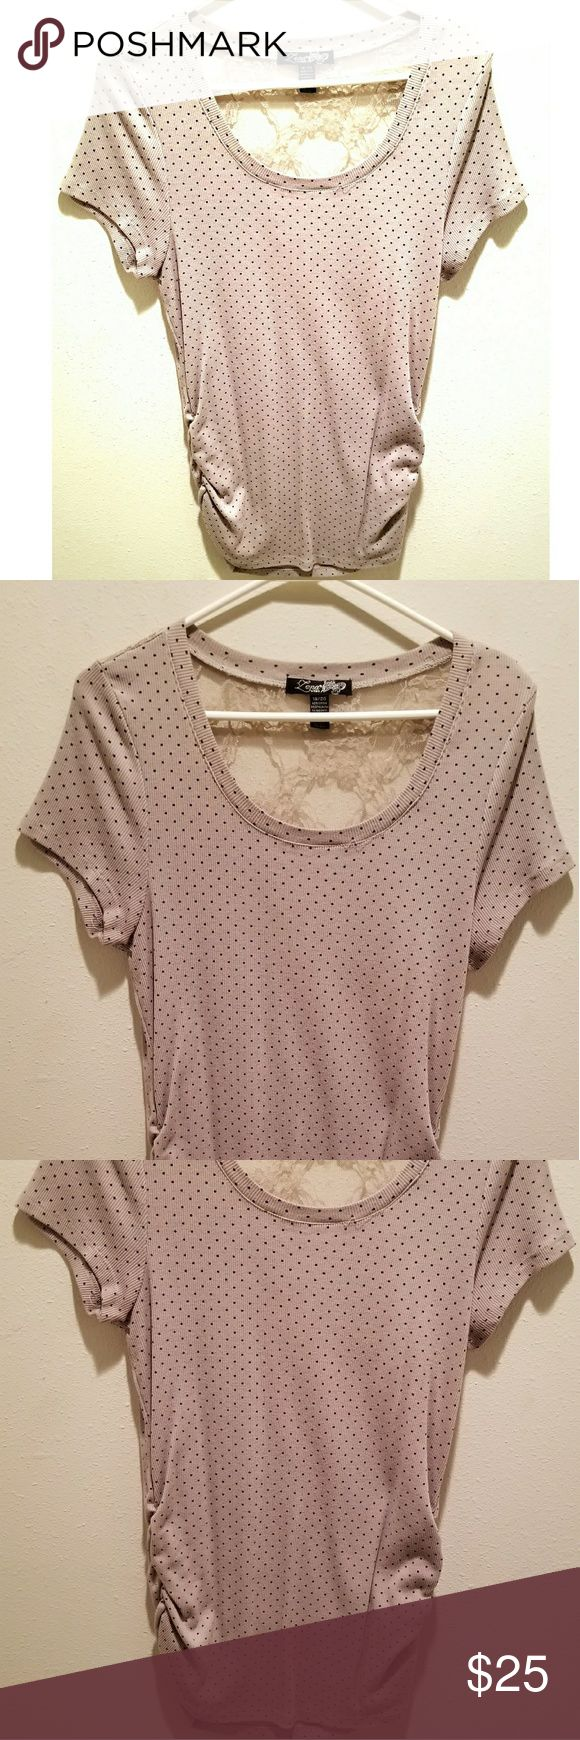 Beige Top w/ Black Polka Dots & Lace Back Cute short sleeve top. Beige-ish color with black polka dots. Lace on the back top from shoulder to shoulder. Ribbed cotton. Worn once. Zena Tops Tees - Short Sleeve